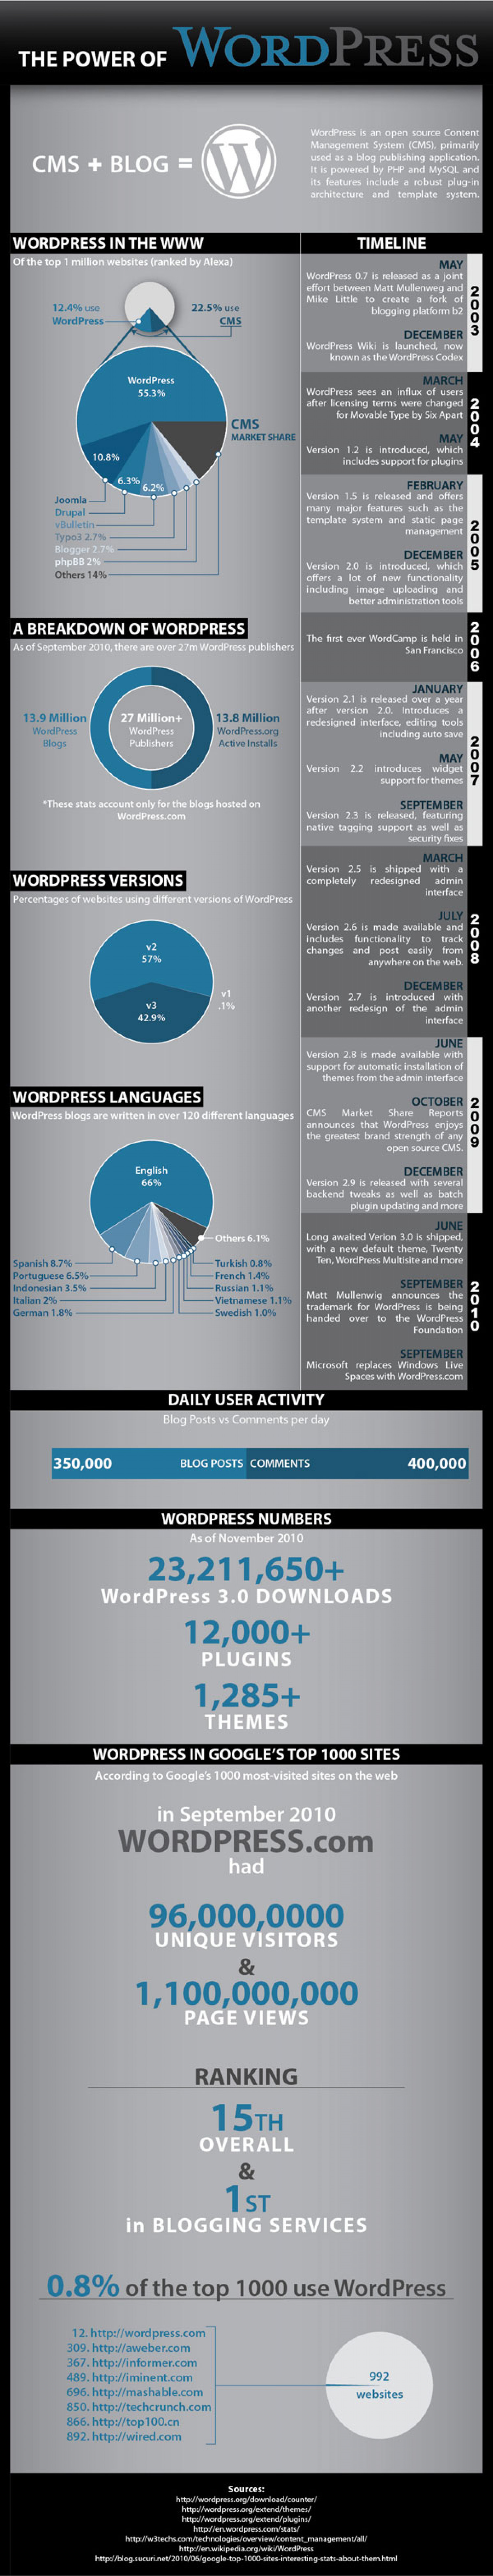 The Power of WordPress Infographic